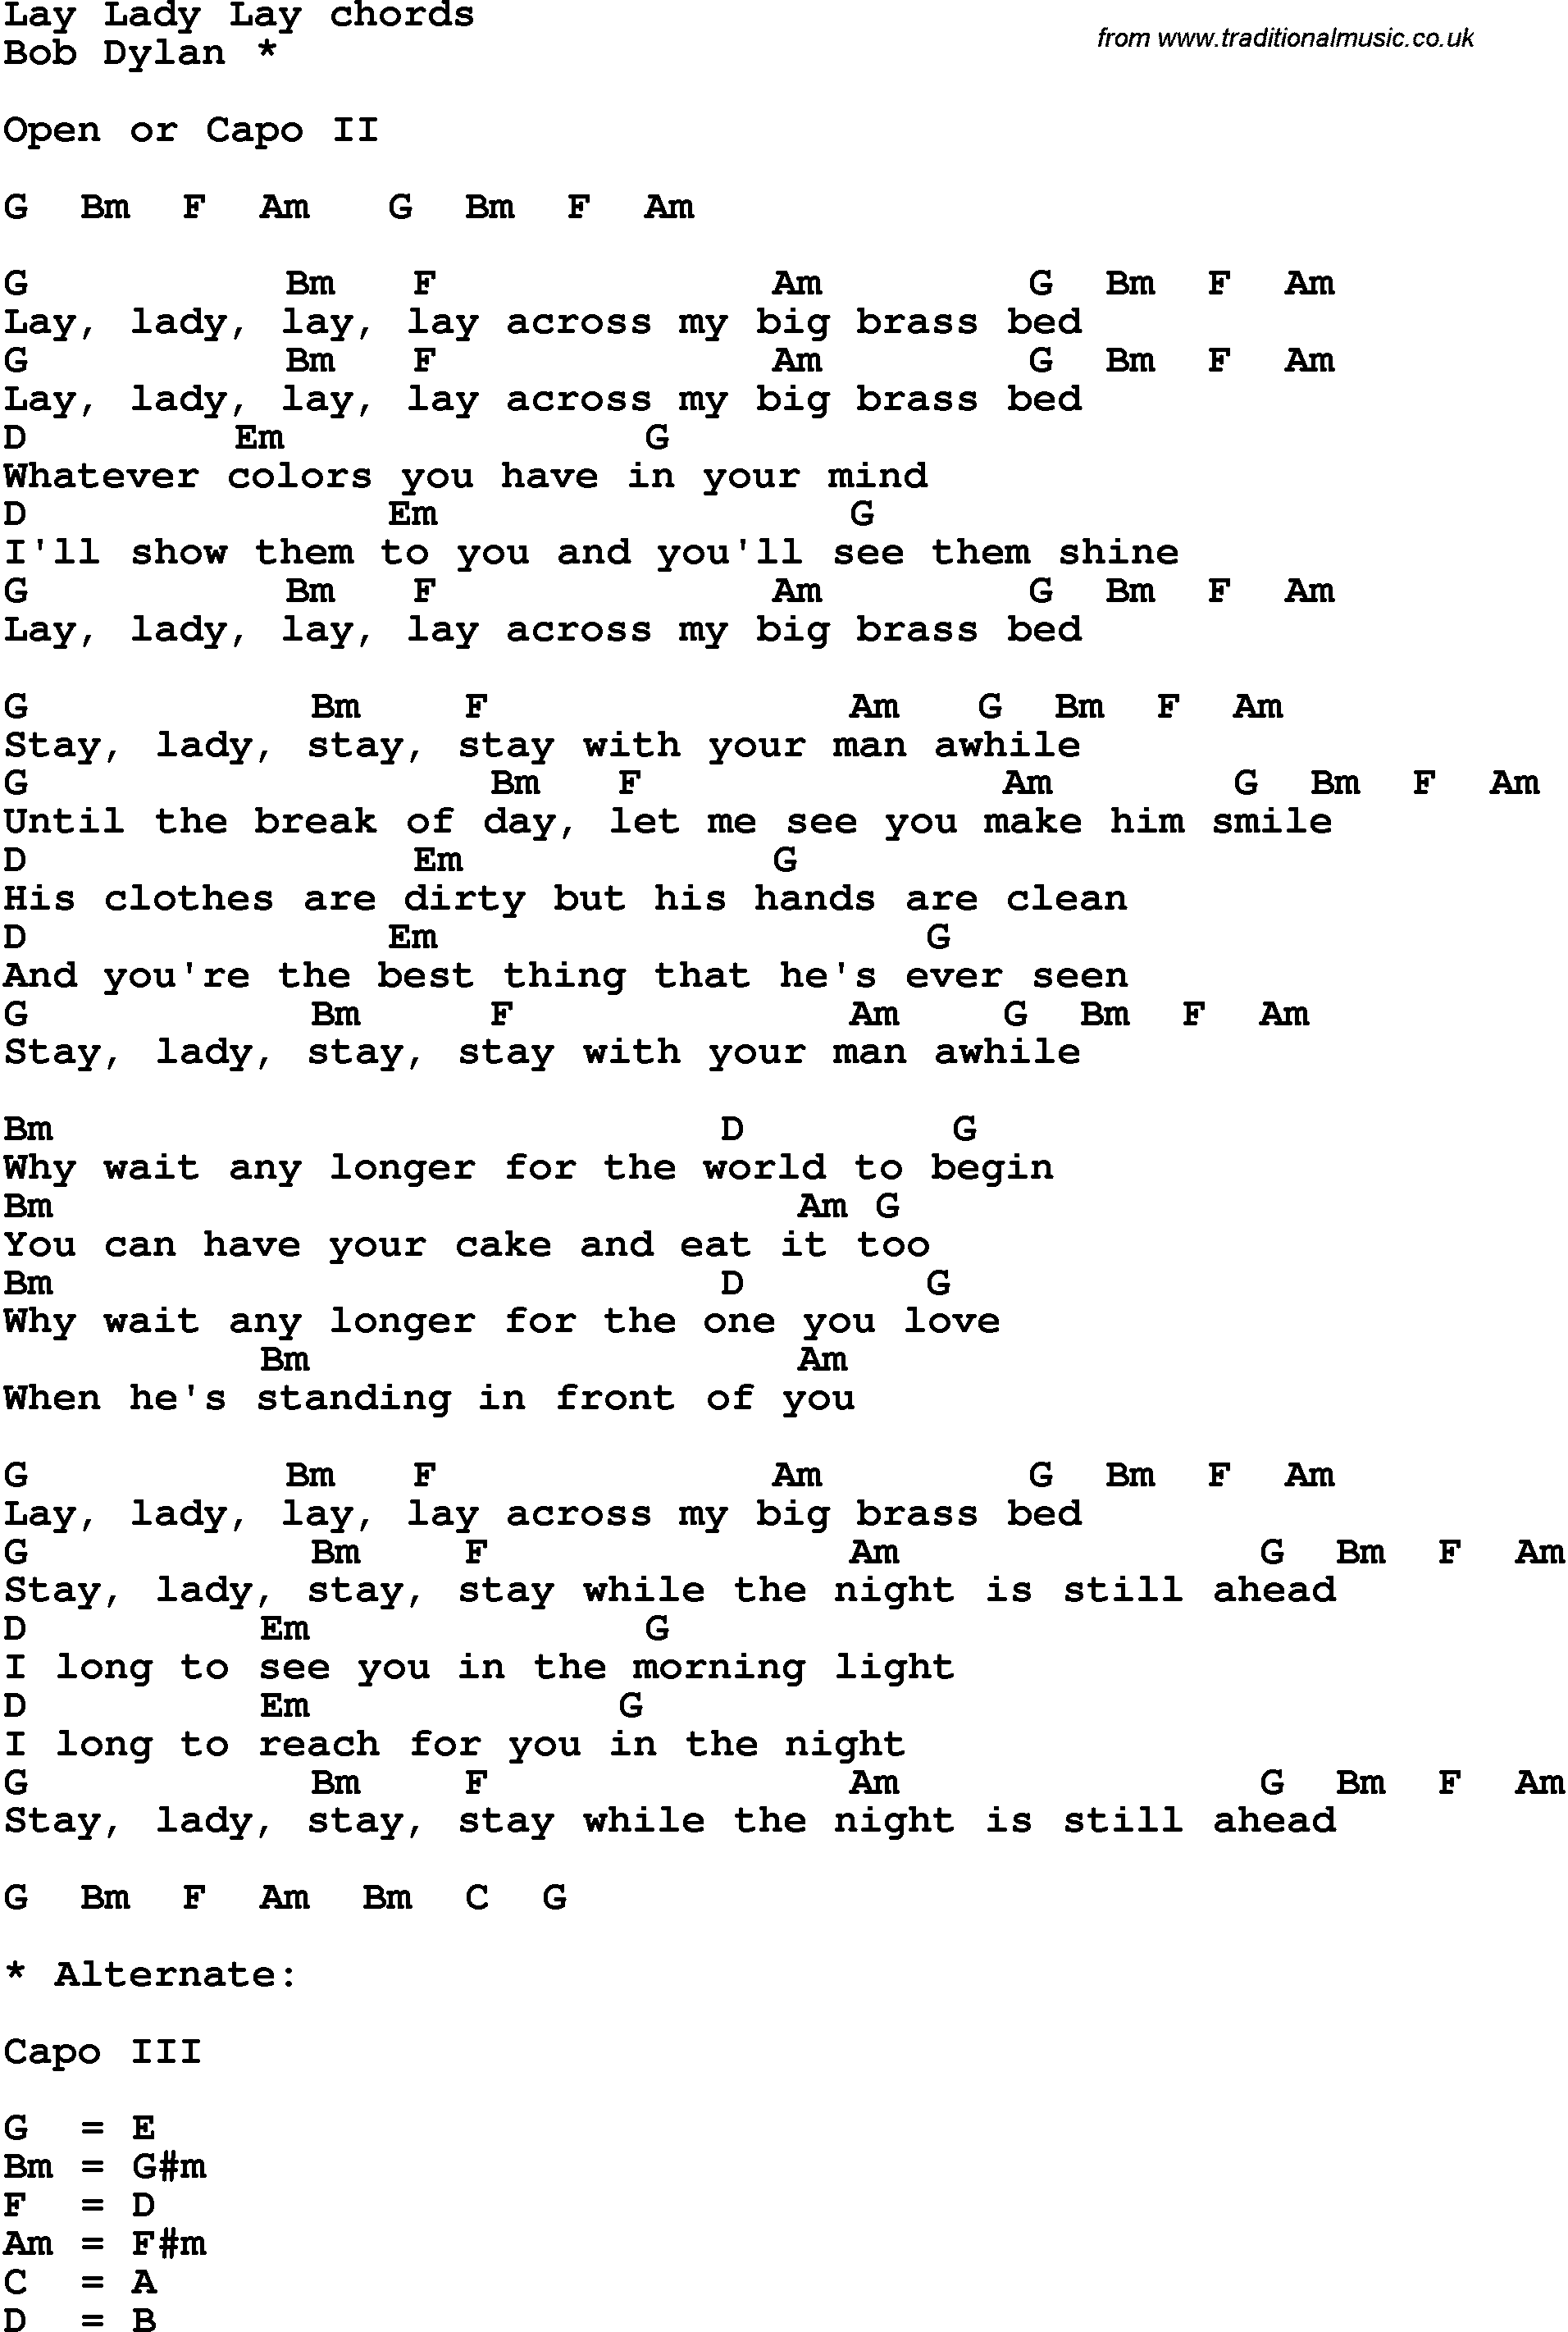 Song Lyrics With Guitar Chords For Lay Lady Lay